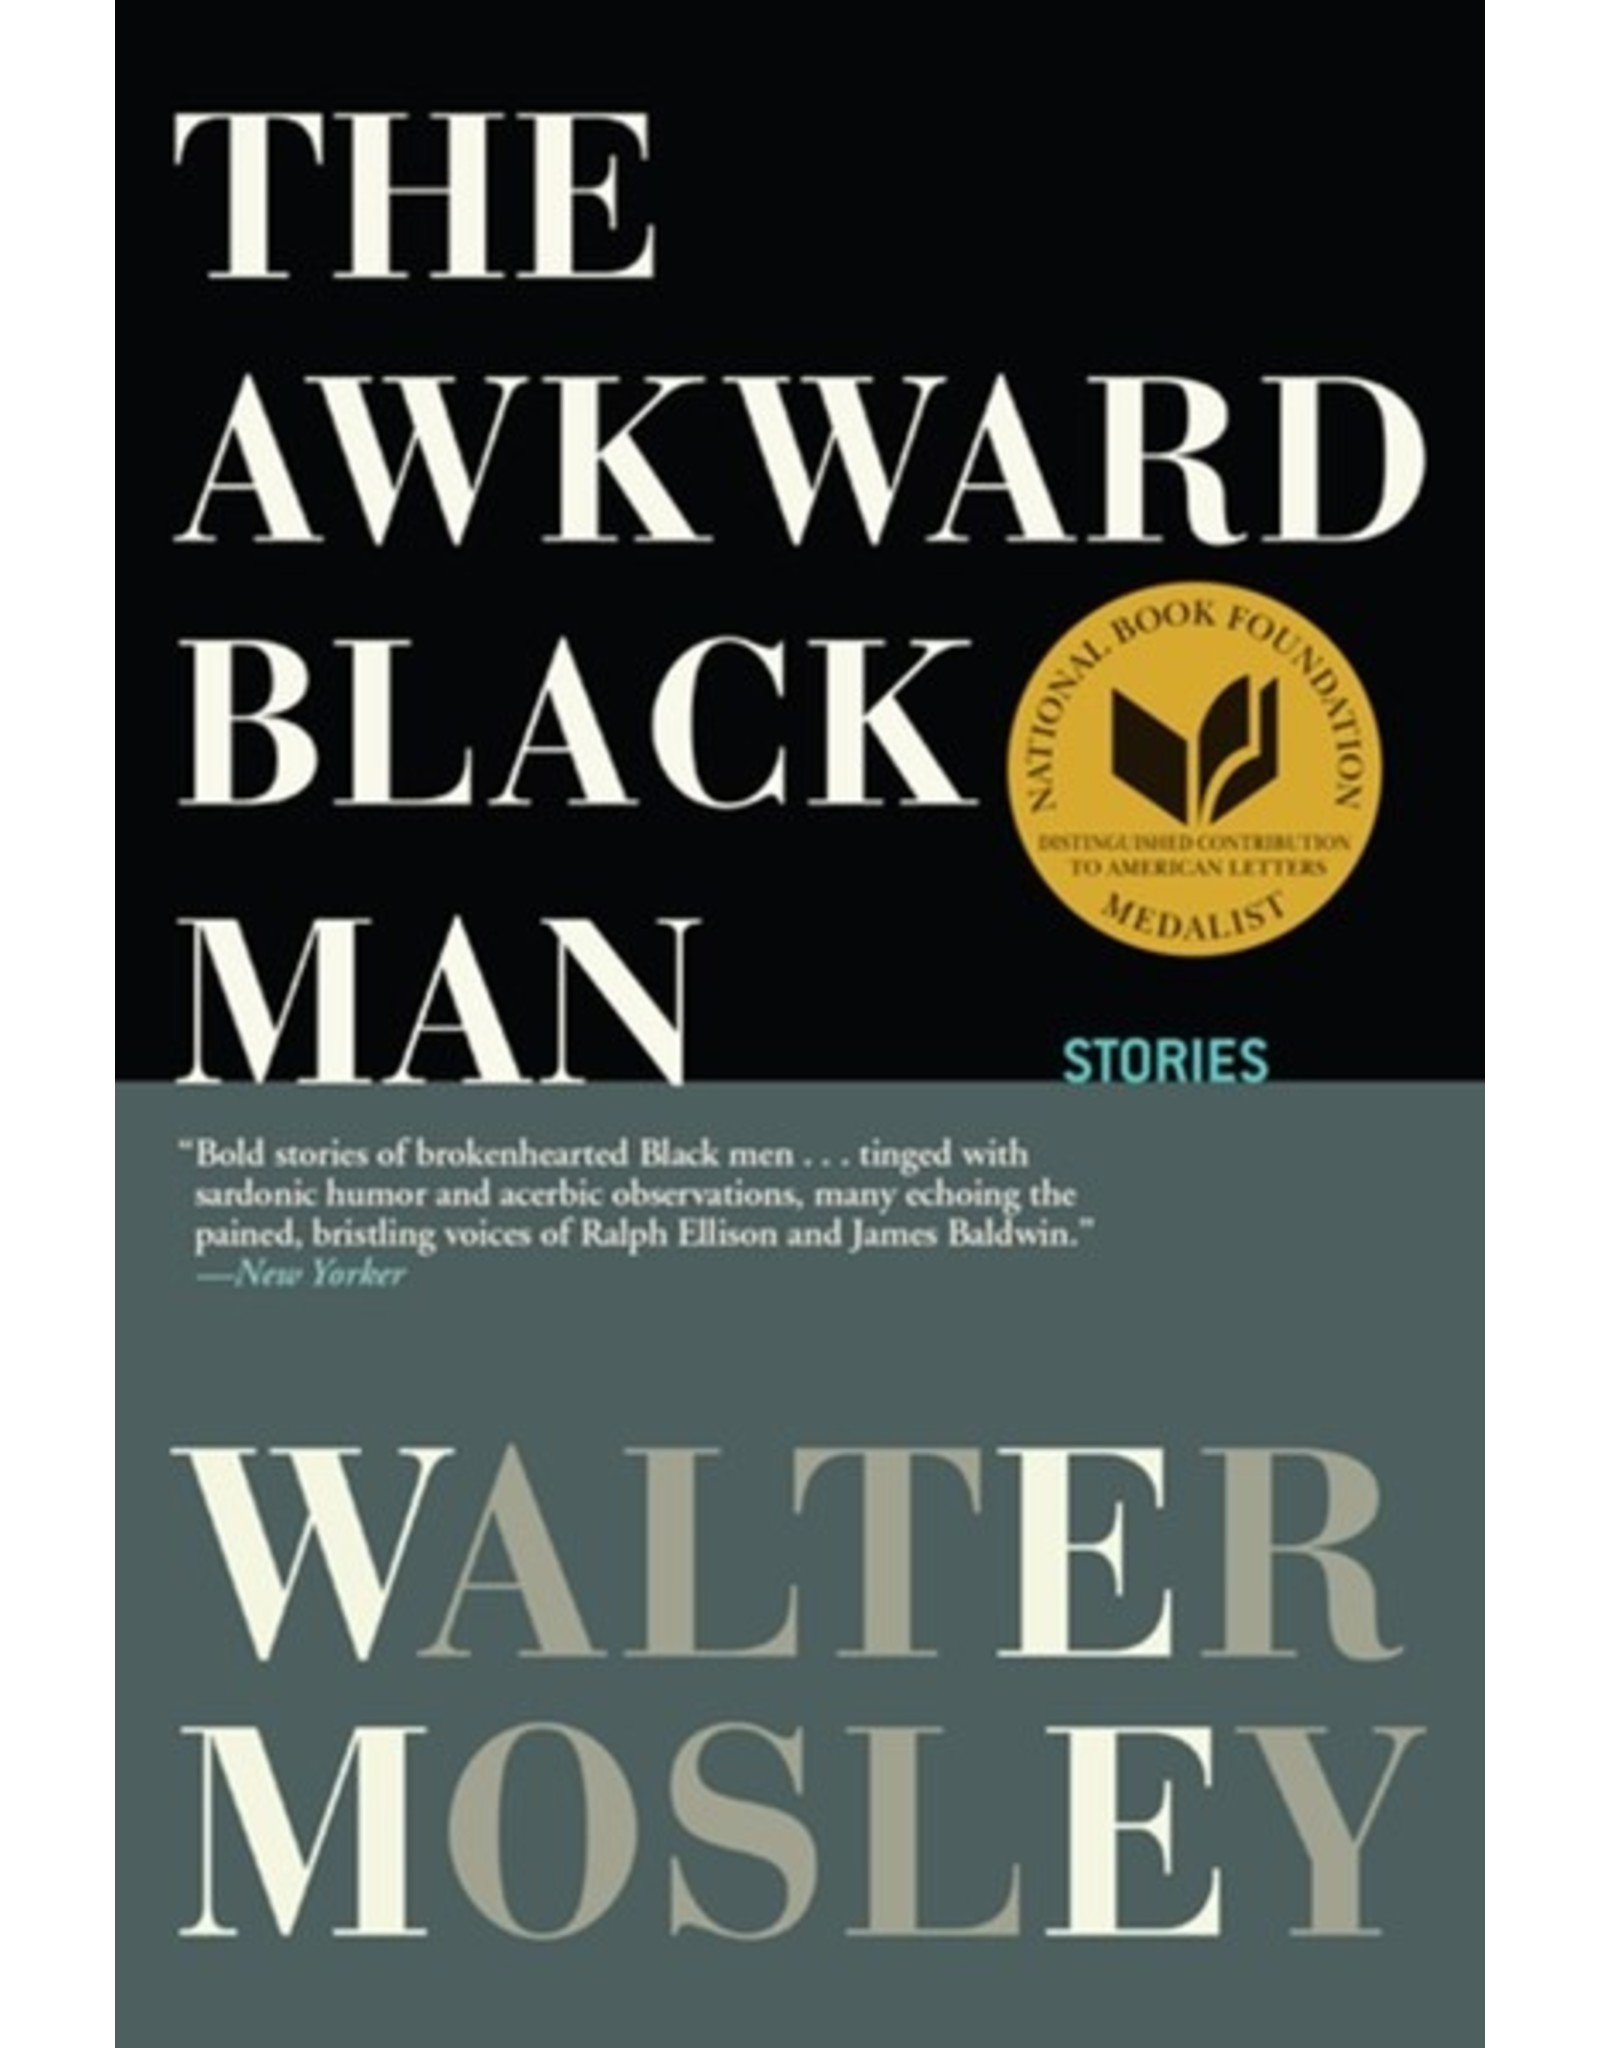 Books The Awkward Black Man: Stories by Walter Mosley